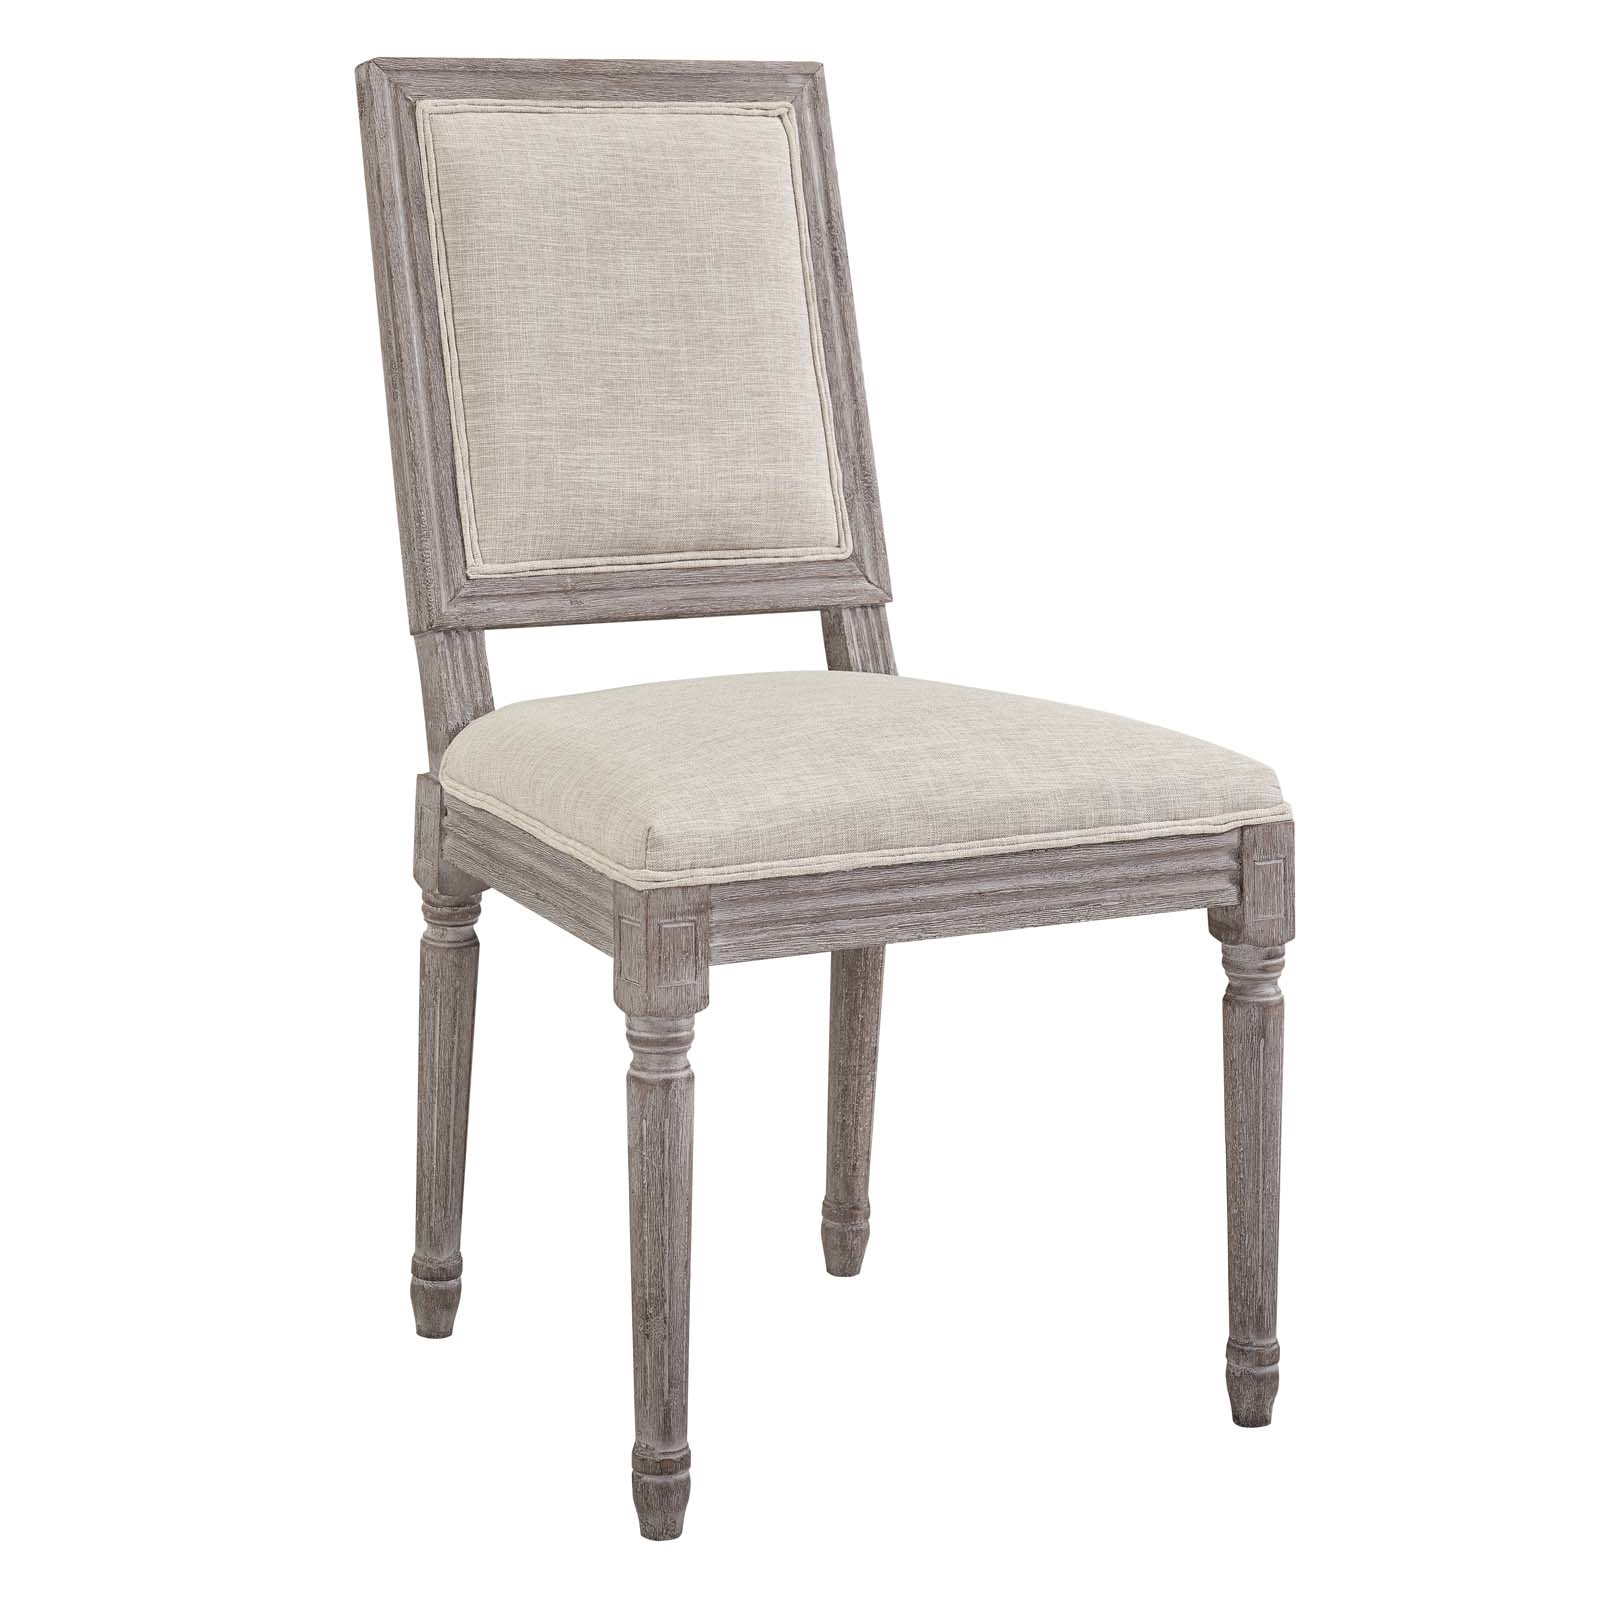 Court Vintage French Upholstered Fabric Dining Side Chair in Beige